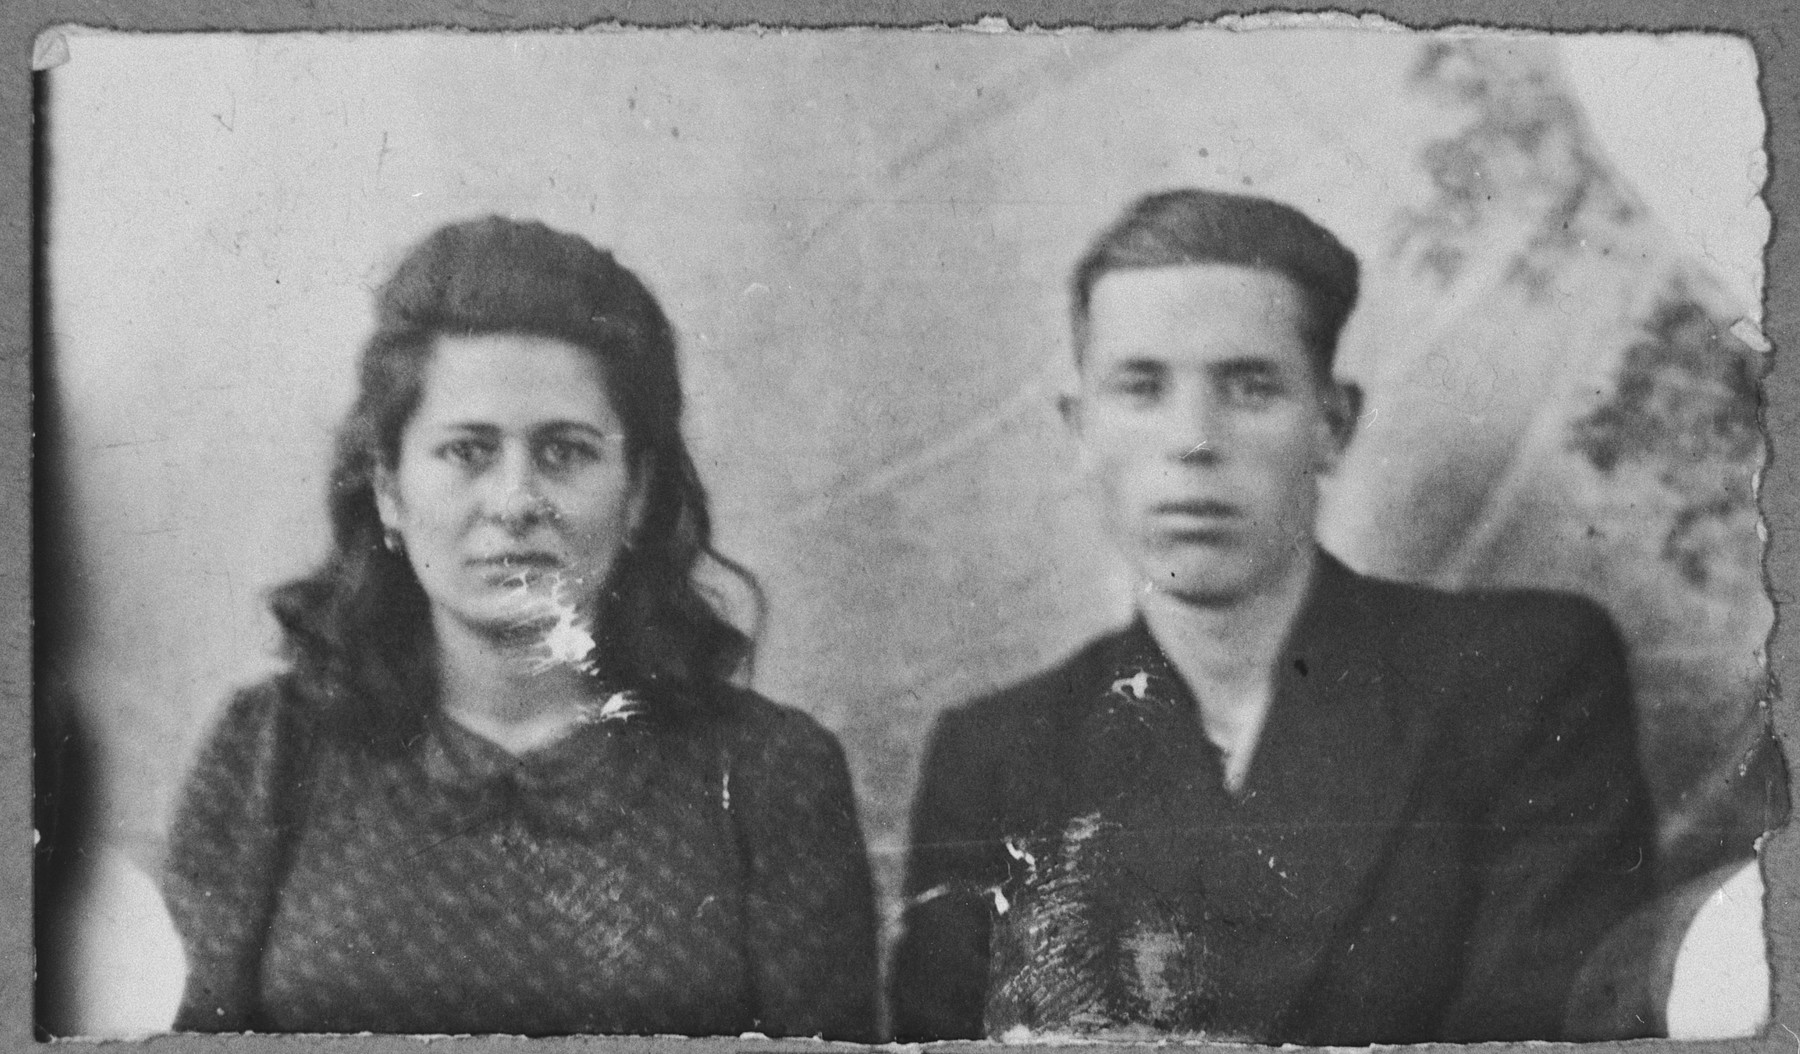 Portrait of David Albocher, son of Haim Albocher, and [his wife], Sara.  He was a greengrocer.  They lived at Kossantschitscheva 20 in Bitola.